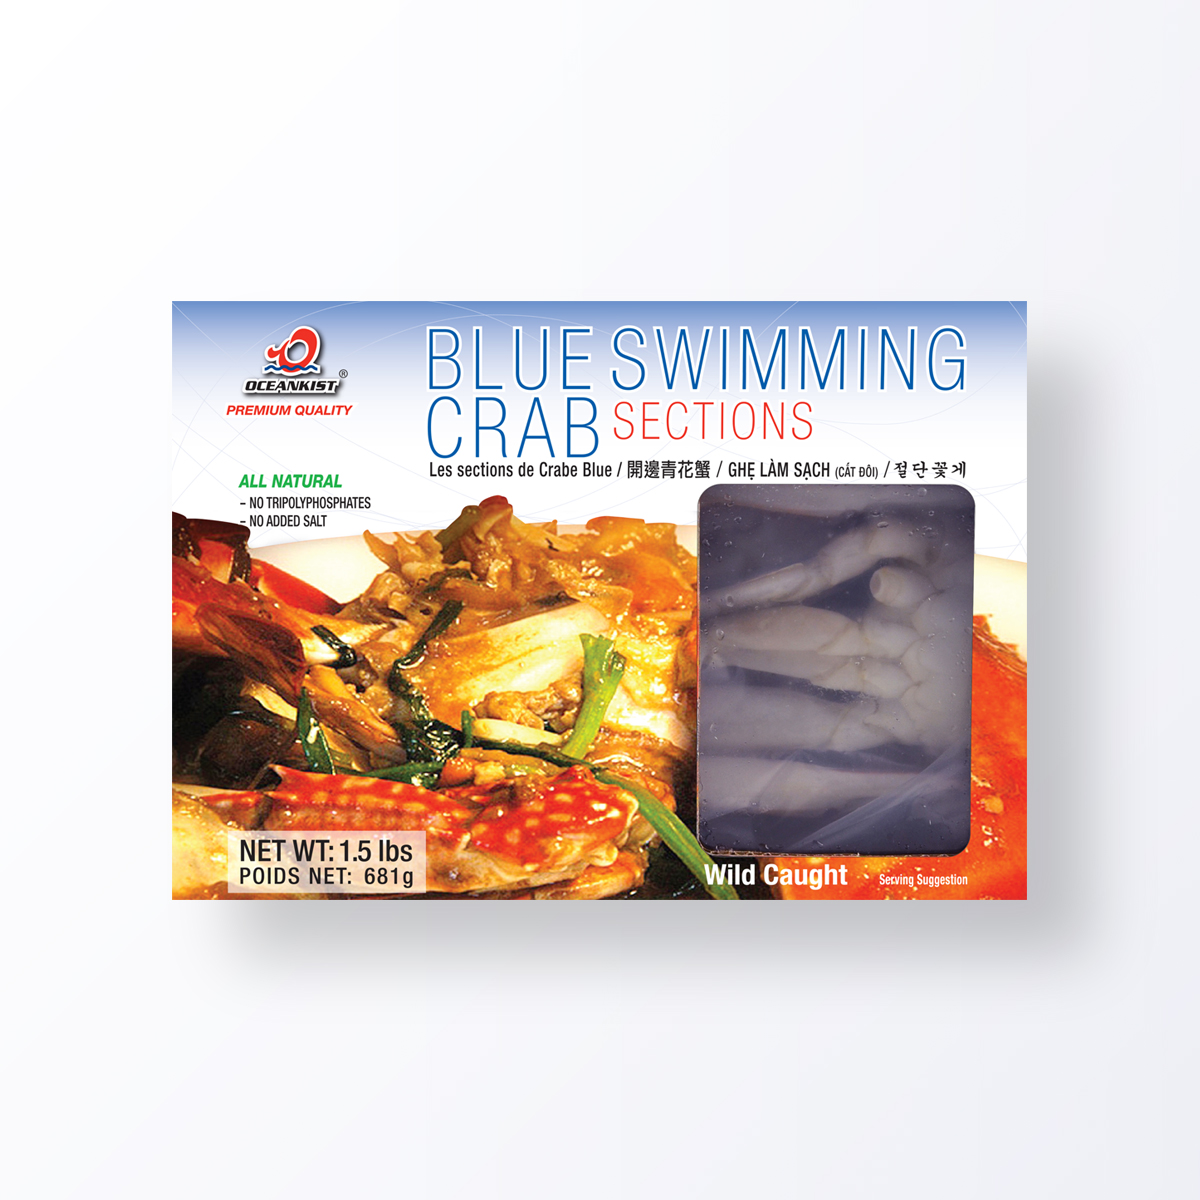 CRA317-Crab-Blue-Swimming-Section.jpg